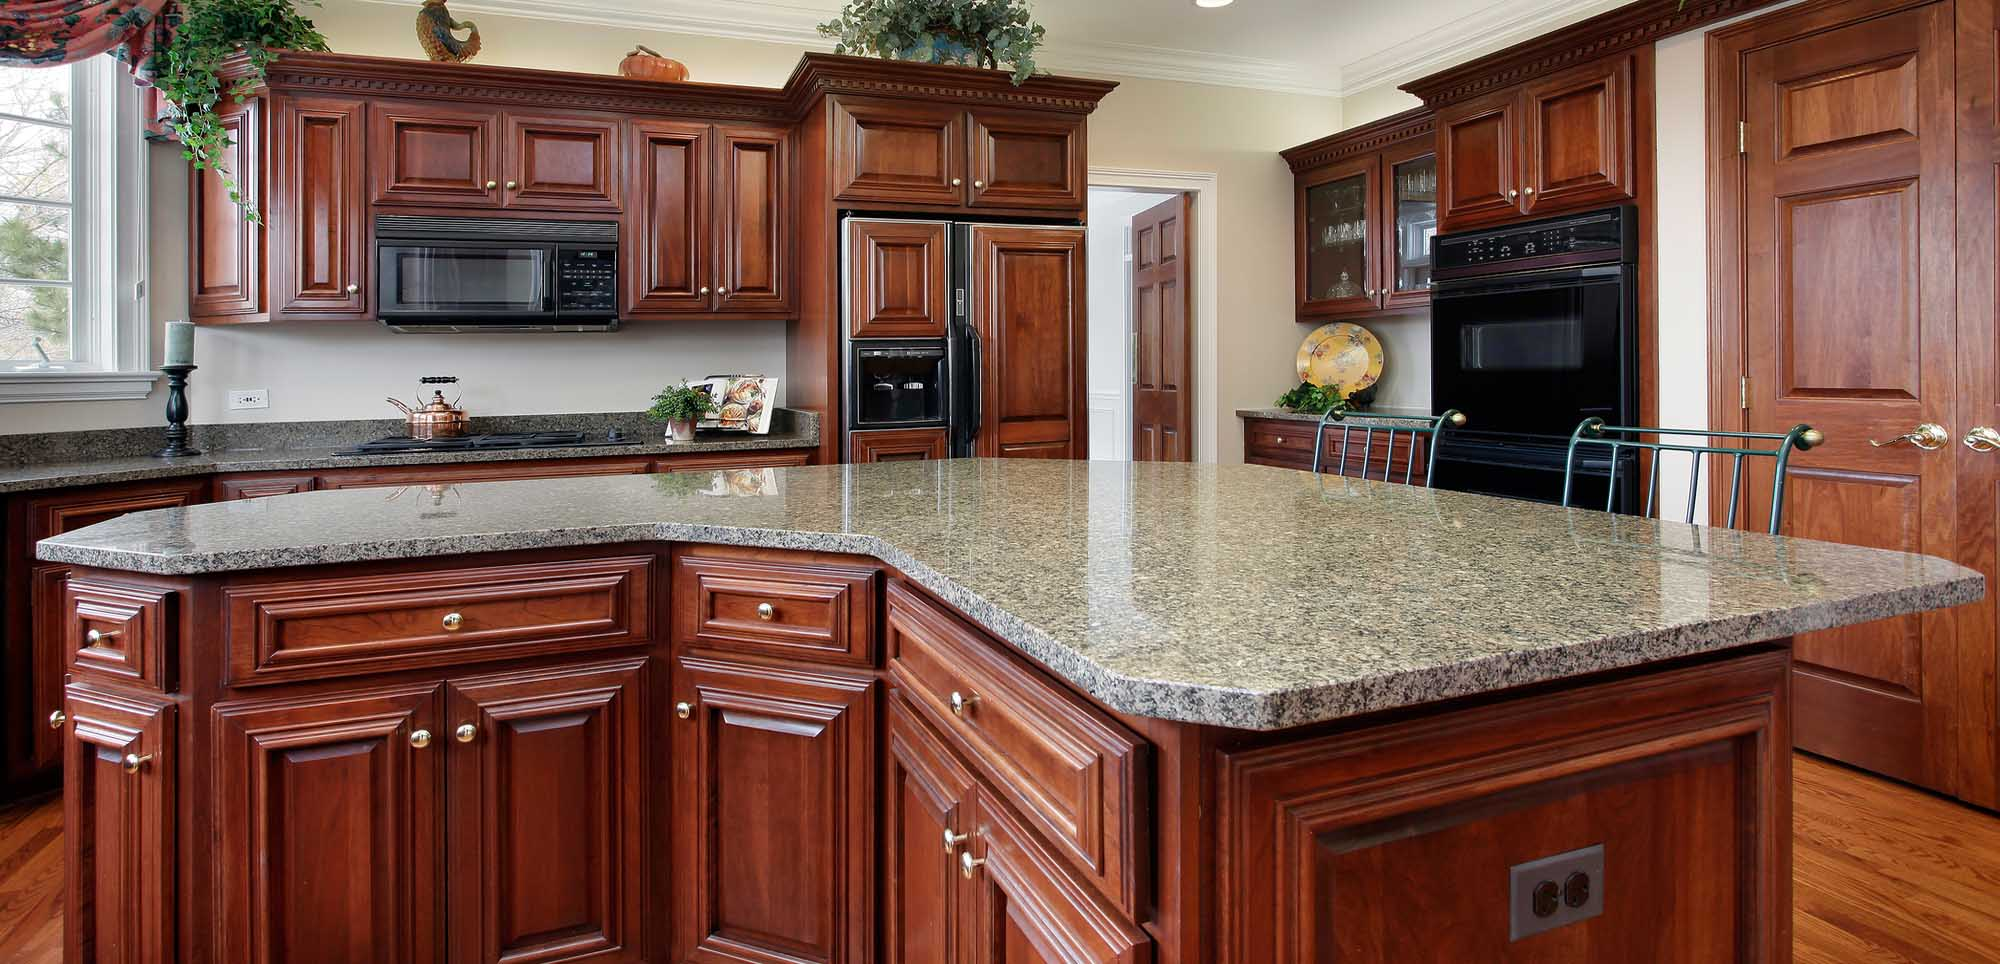 1 Kitchen Countertops Orange